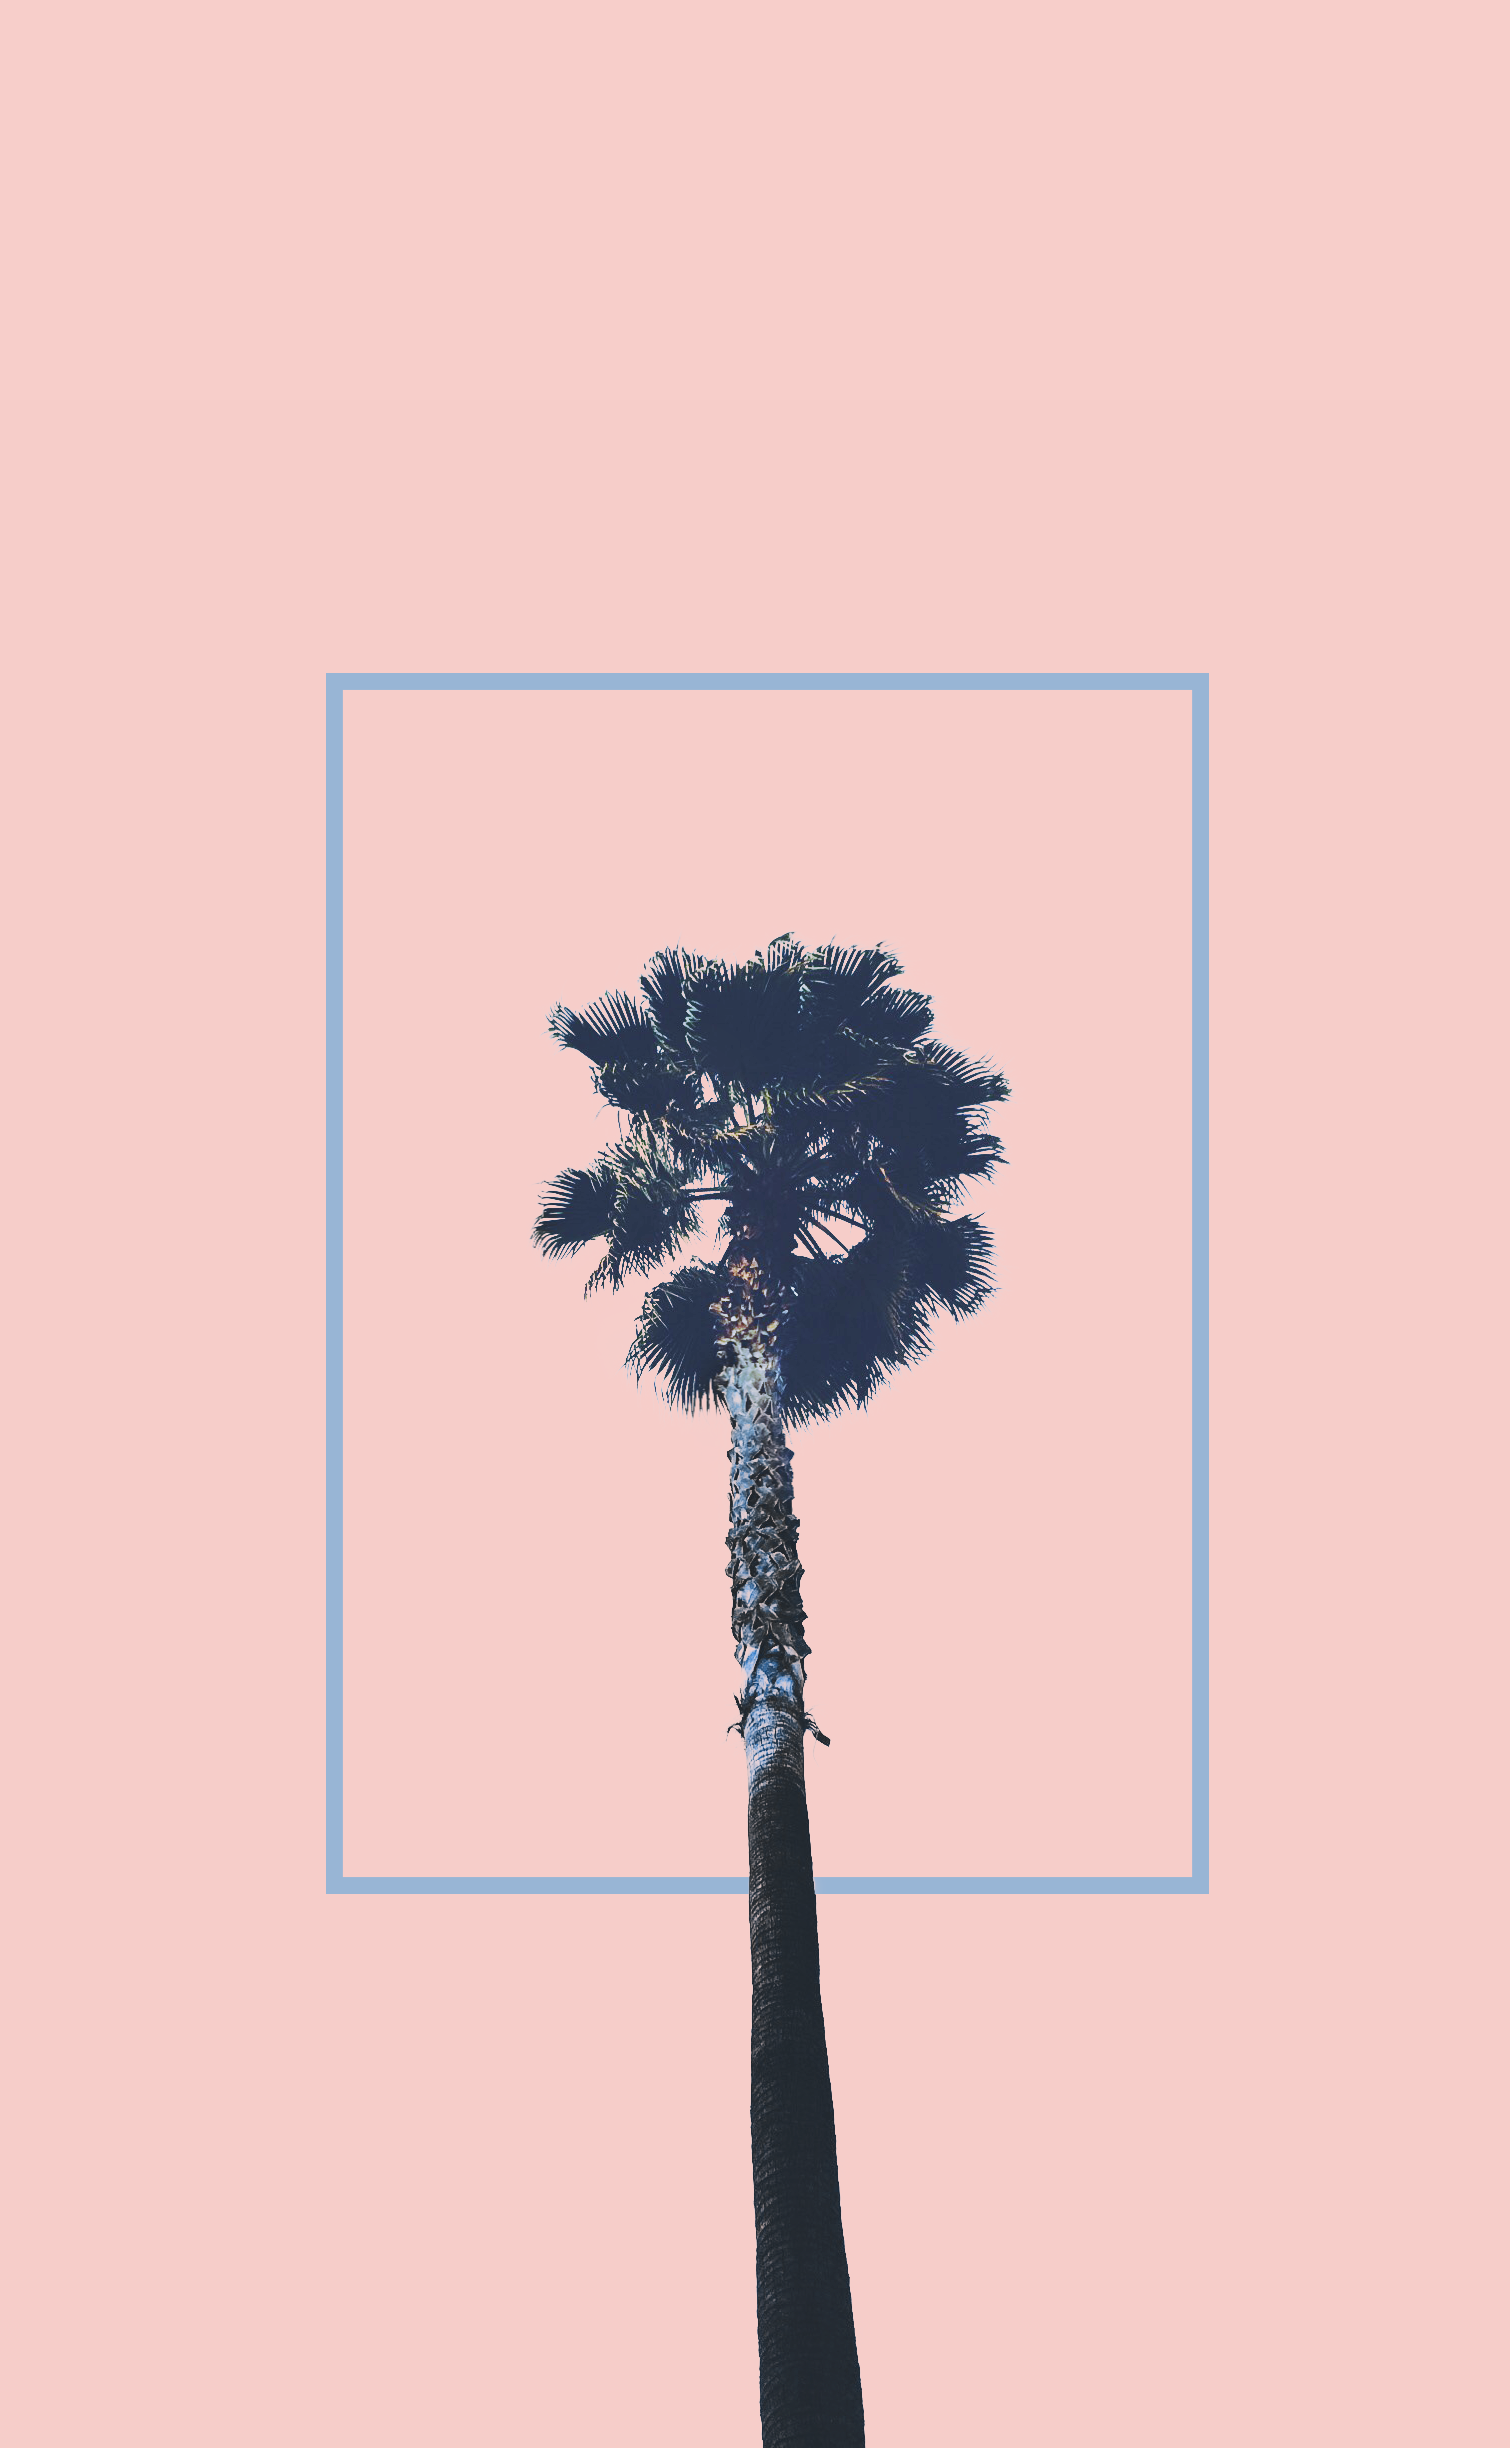 Simple Wallpapers, Tree Wallpaper Iphone, Cover Wallpaper, Pastel Wallpaper, Wallpaper For Your